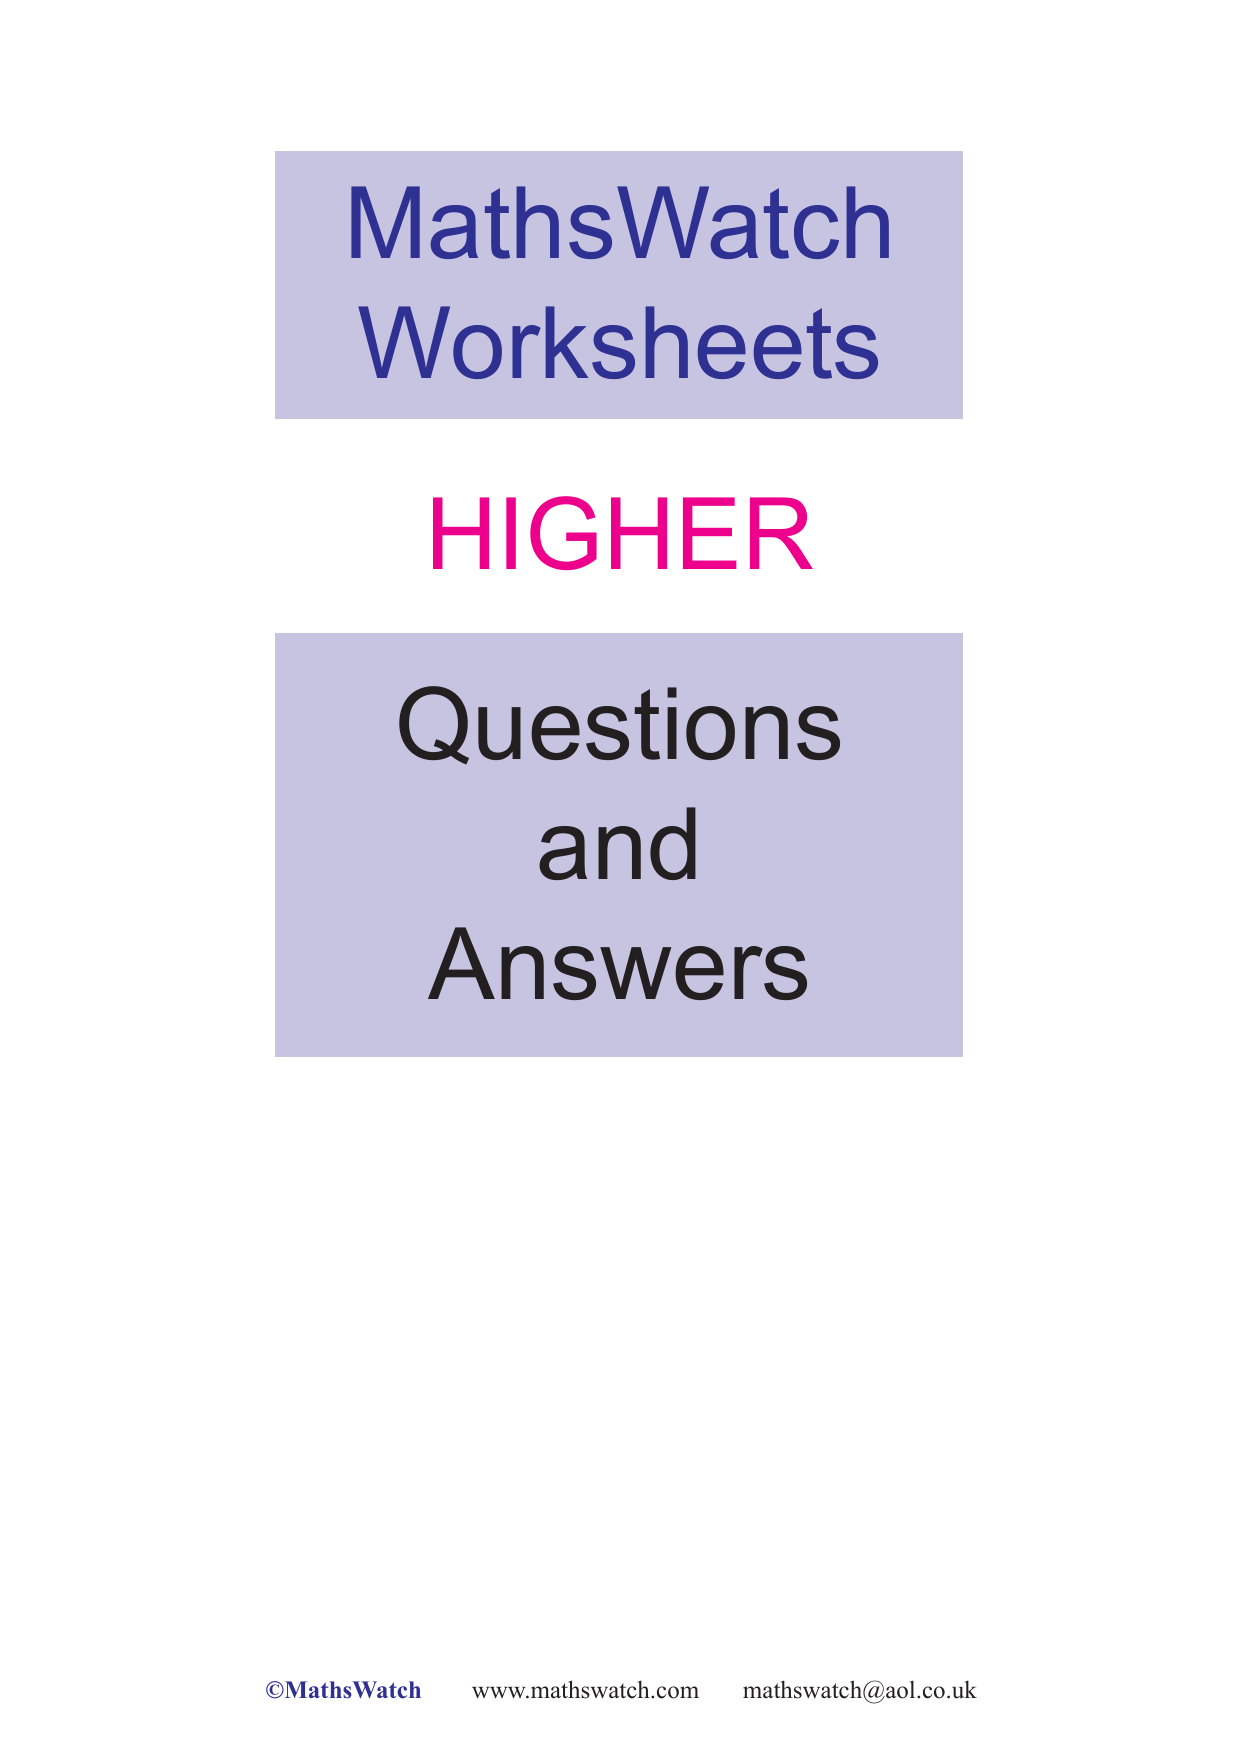 hight resolution of mathswatch-higher-worksheets-aw